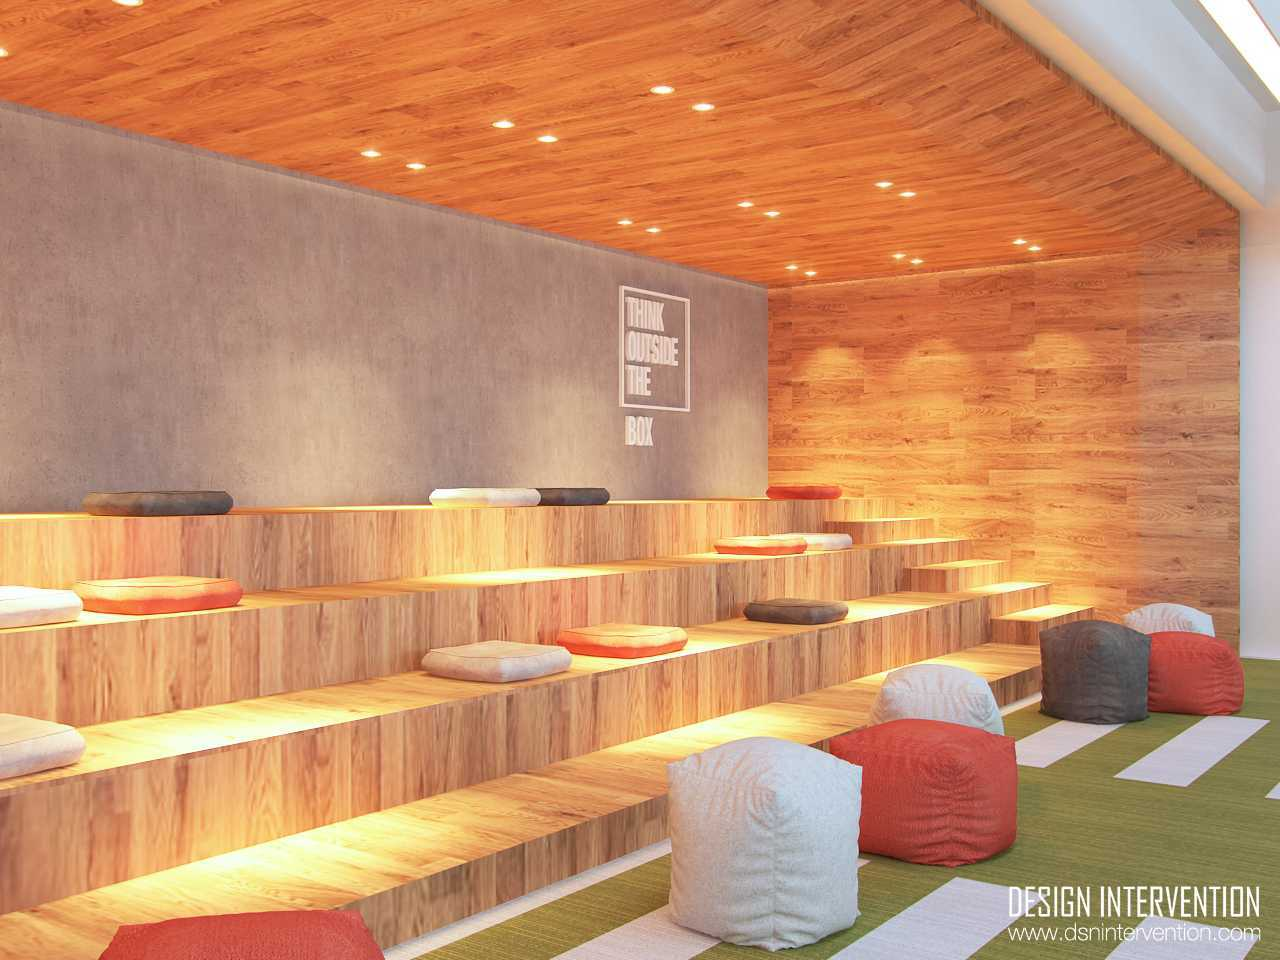 Design Intervention B - Office Concept Bsd Office Park Bsd Office Park Photo-13972  13972